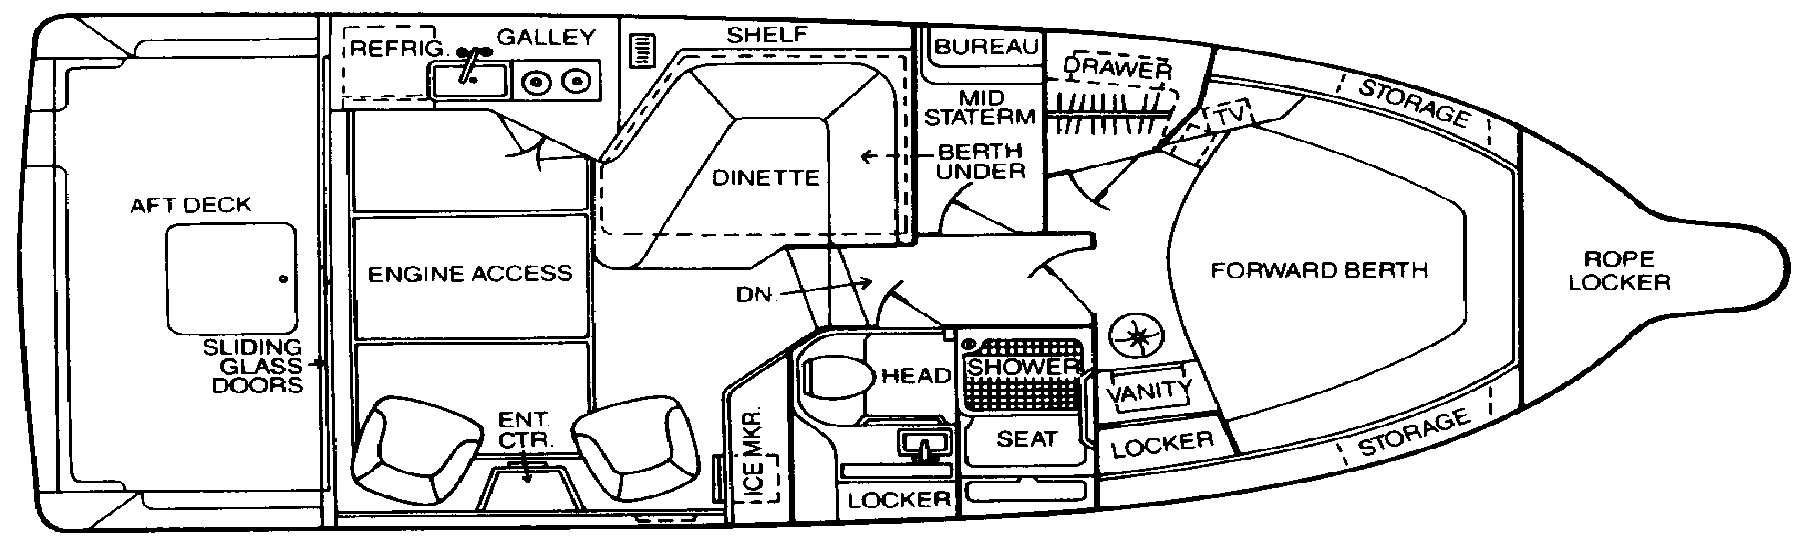 345-340 Sedan Bridge Floor Plan 1